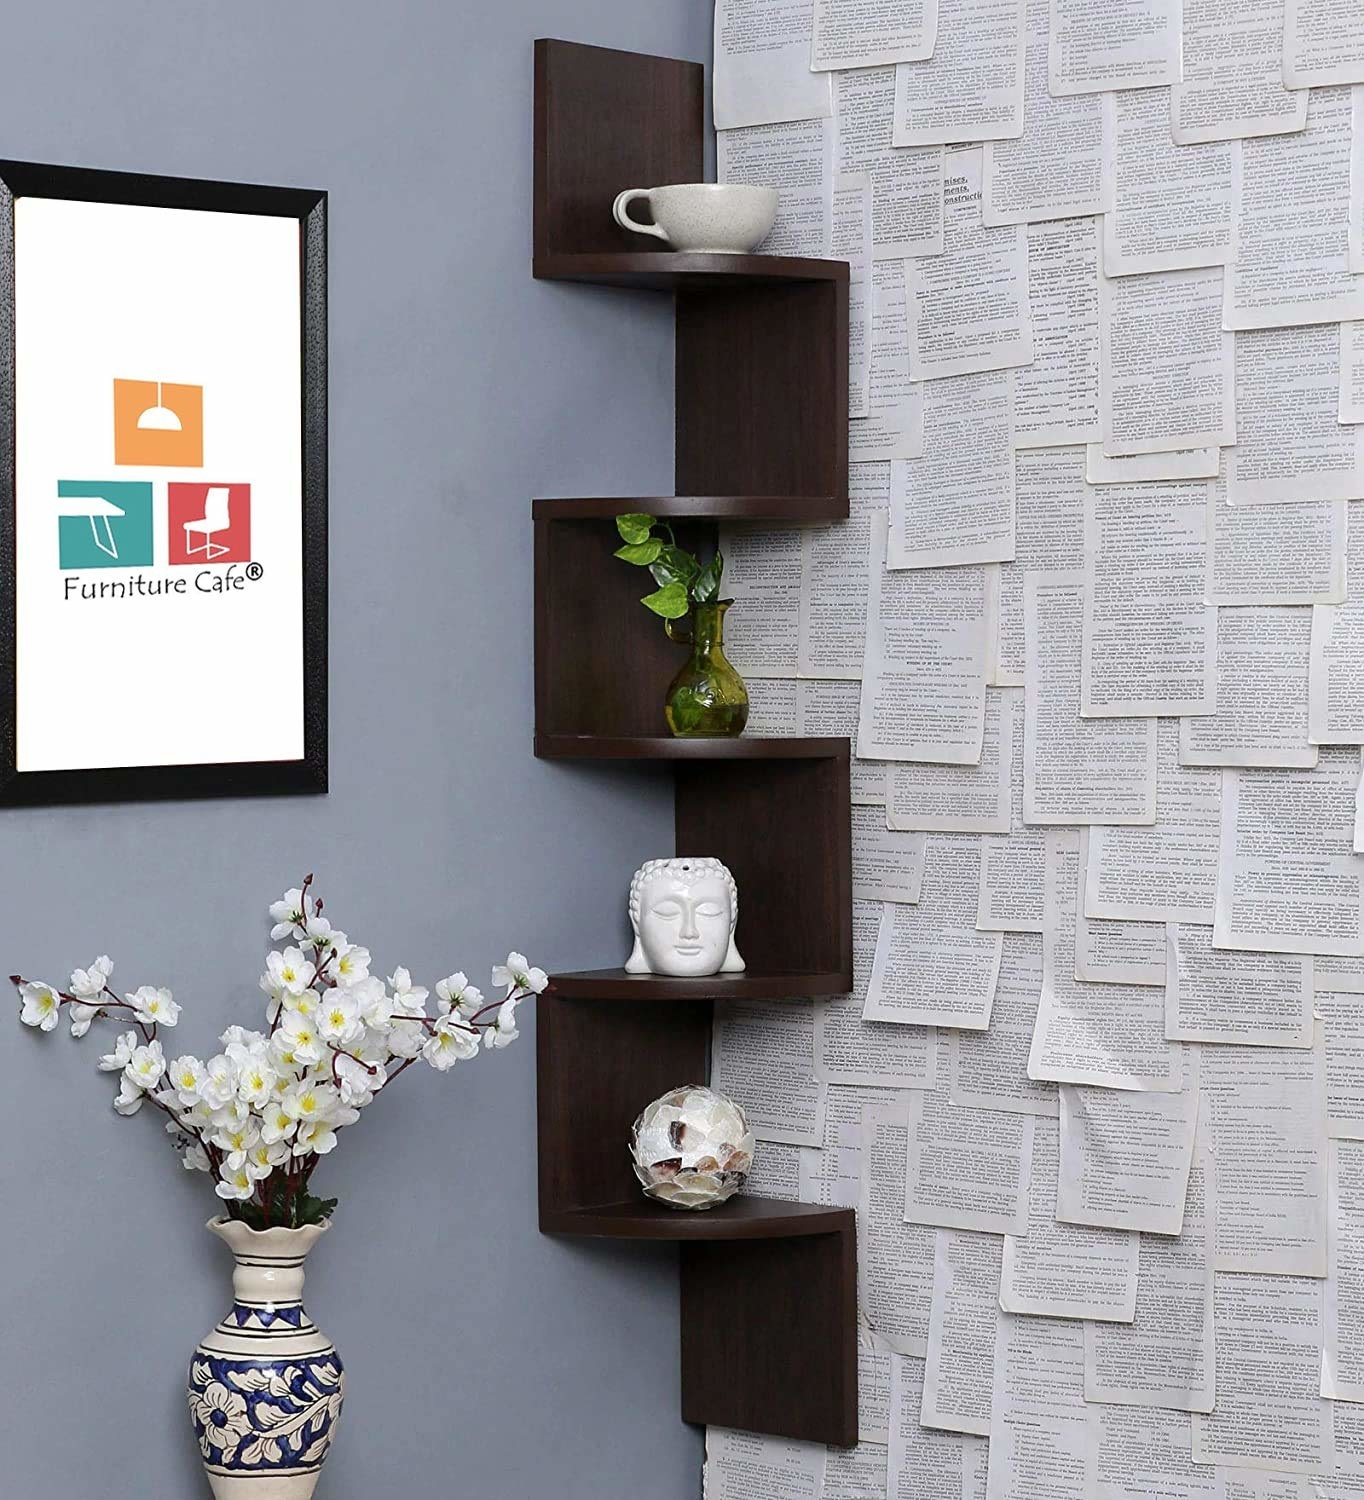 Zig wall shelves in the corner of a room, holding vases and other showpieces